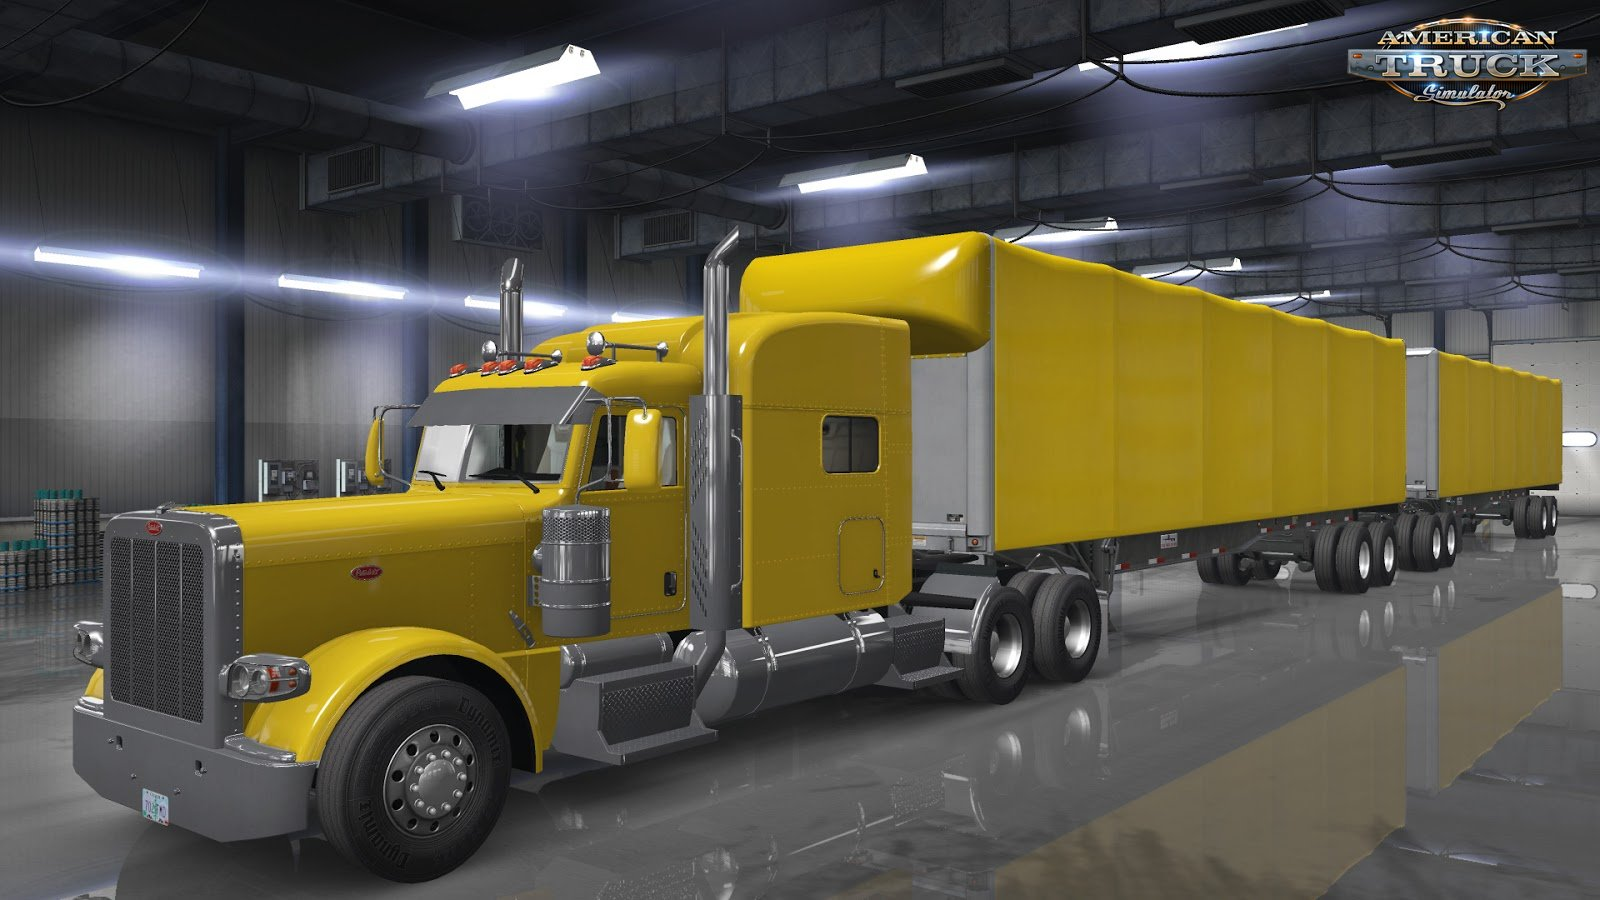 American Truck Simulator Update 1.33 Open Beta